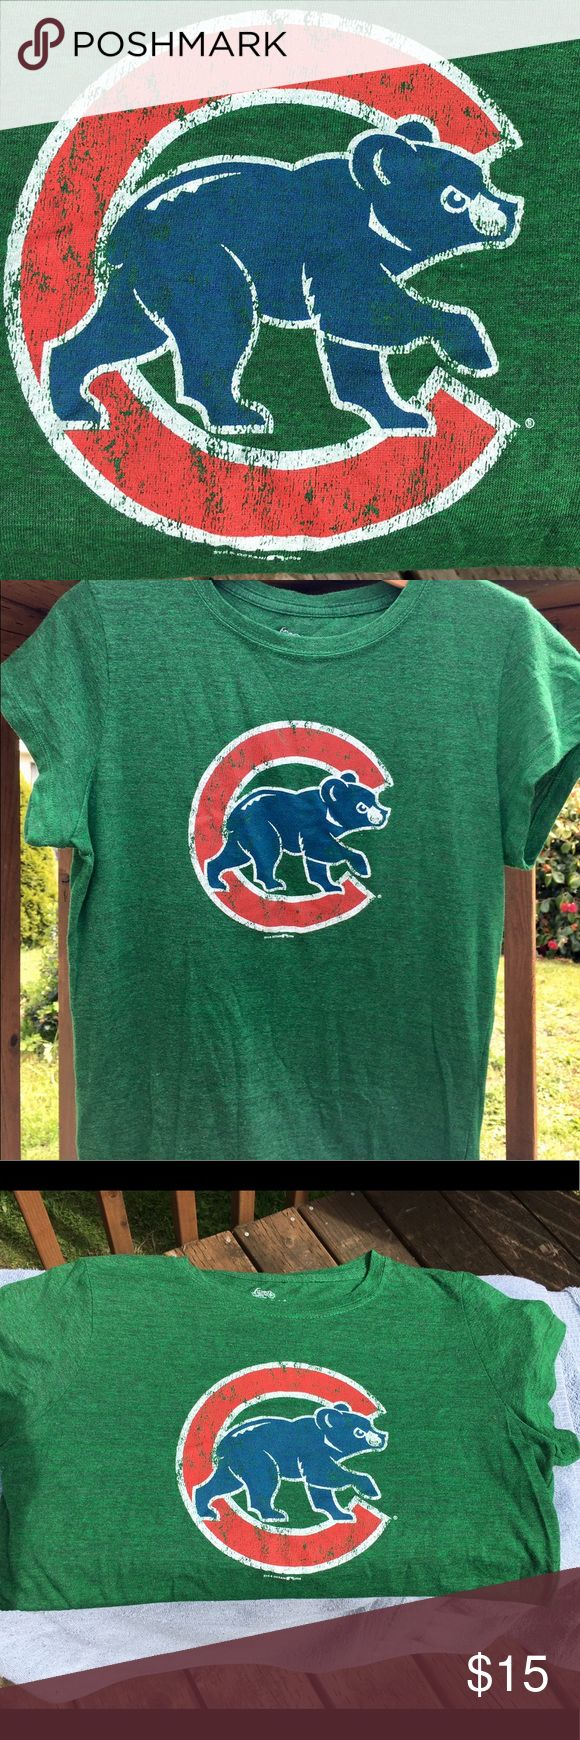 ⚾️️MLB Chicago Cubs T Womens 5th & Ocean super soft Cubbies T. Worn on St Pattys day only so in great condition. SMOOTH'S  DISCLAIMER FOR ALL ITEMS: 💯 Authentic 🚫NO trades  👉🏽NO longer taking offers on this item since it is priced as low as i can go. Postmark takes 20% of sales plz keep that in mind ❣️Please be kind as that's what you'll get in return ☮️Thanks for the opportunity to share my goods w/ u ✌🏽️💝😁 <- My Motto Peace, Love & Happiness Always! 5th & Ocean Tops Tees - Short…